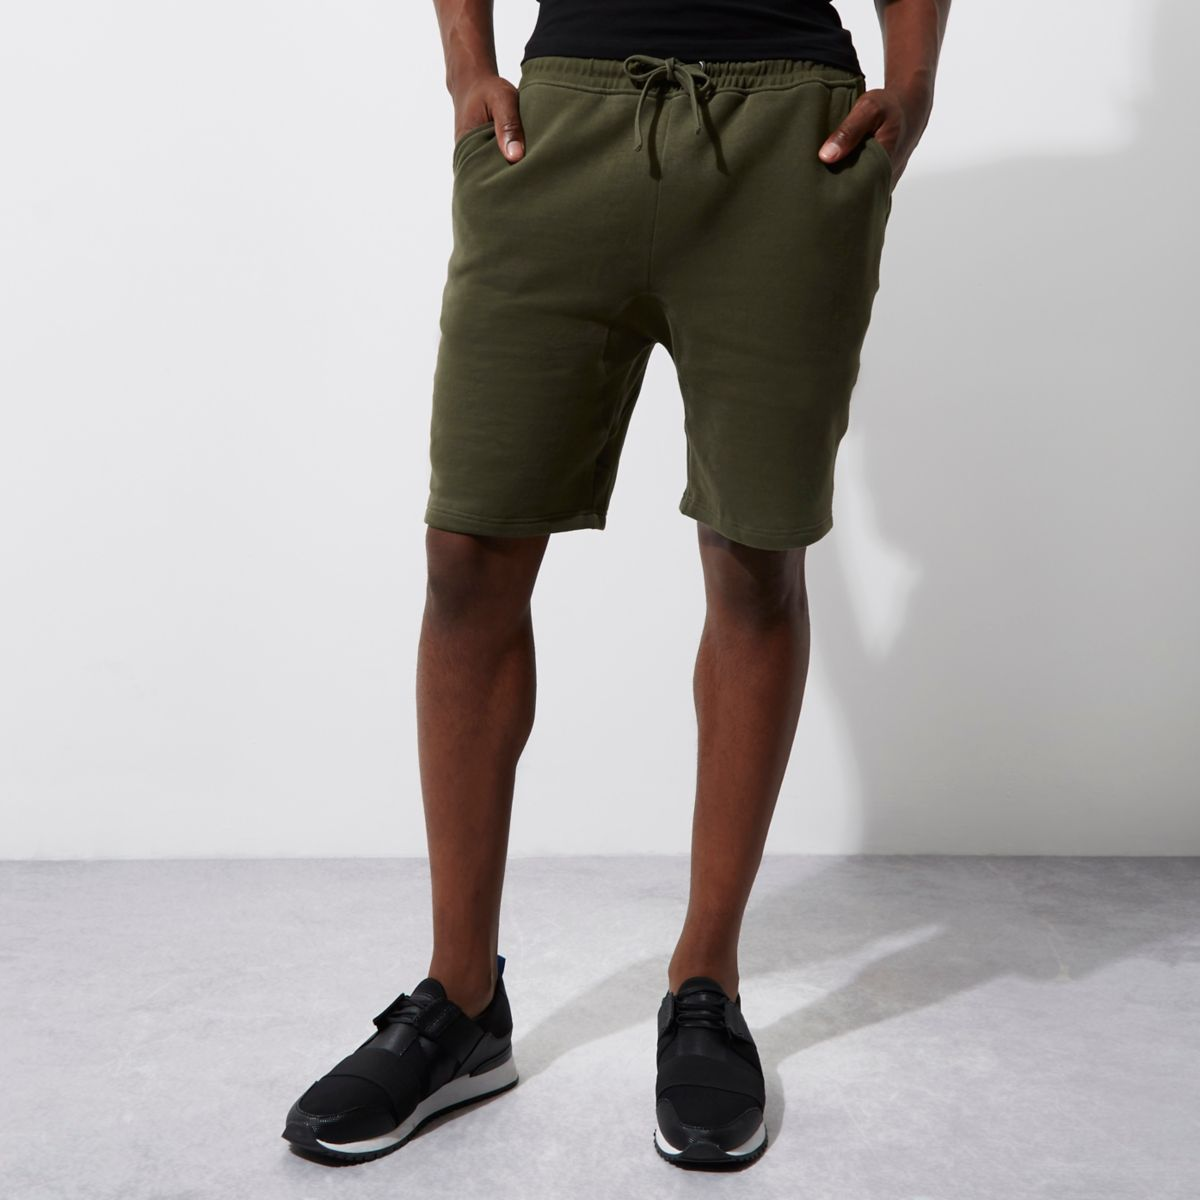 Dark green jersey shorts